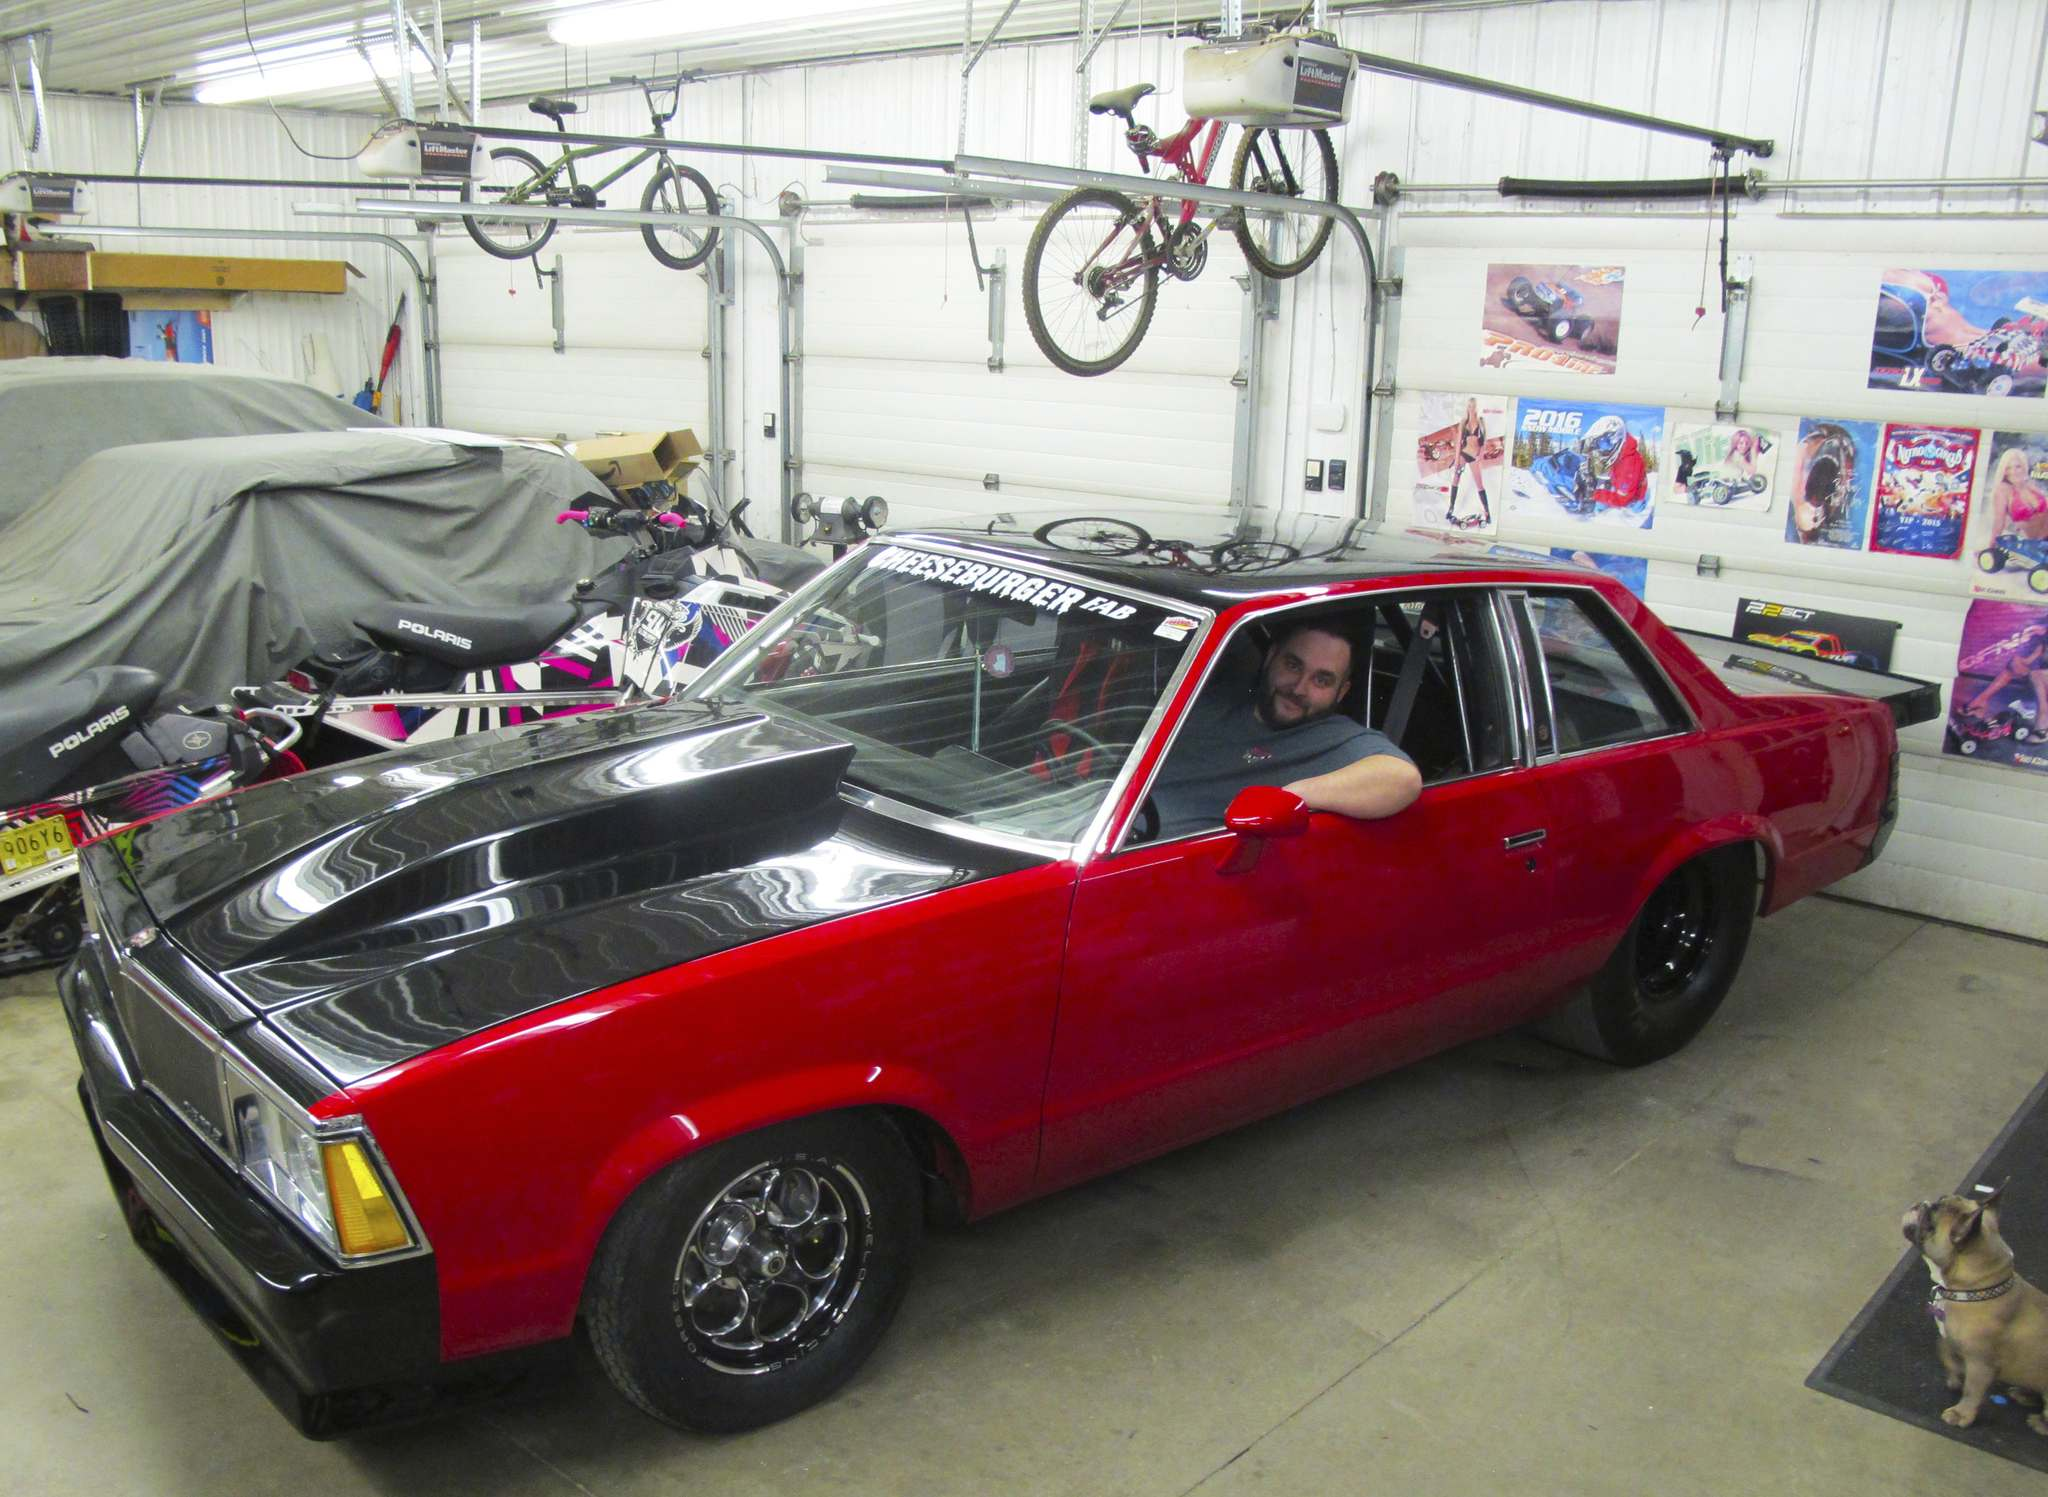 Willy Williamson / Winnipeg Free PressRyan Gobeil's 1980 Chevrolet Malibu has seen several changes over the many years he's owned it — more than two decades now — but this winter, he went all-in to have his prized ride ready for World of Wheels.